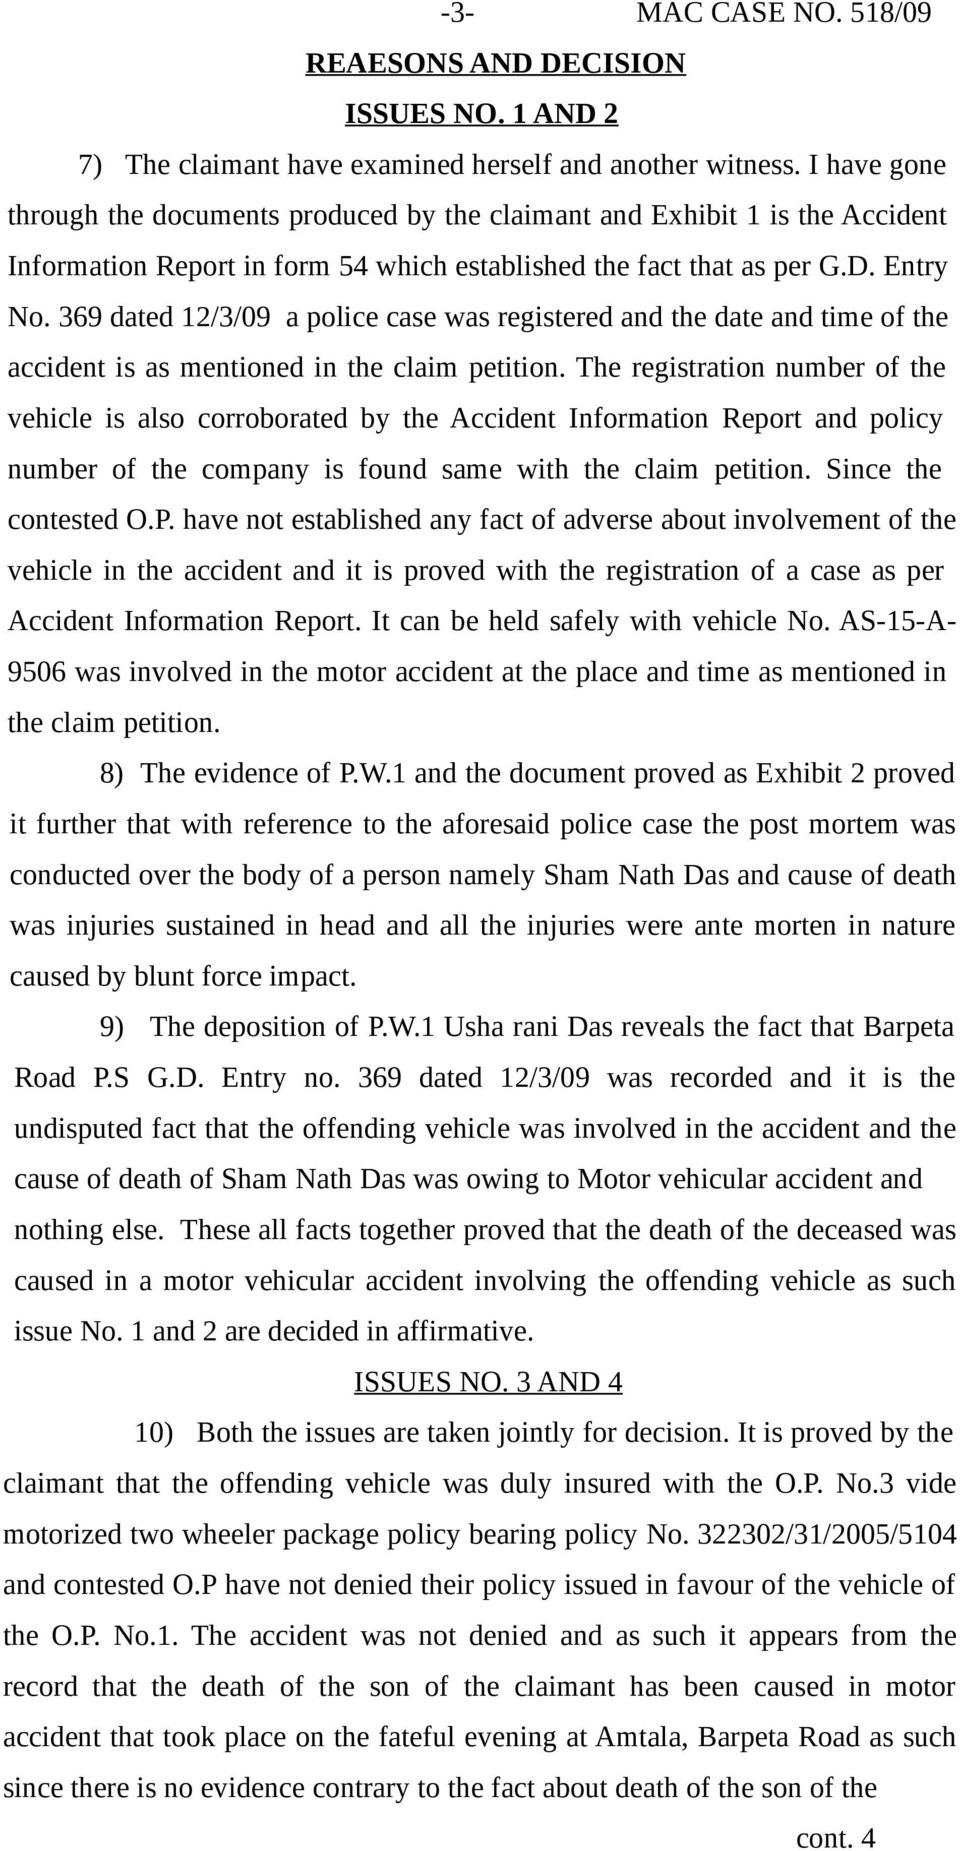 369 dated 12/3/09 a police case was registered and the date and time of the accident is as mentioned in the claim petition.